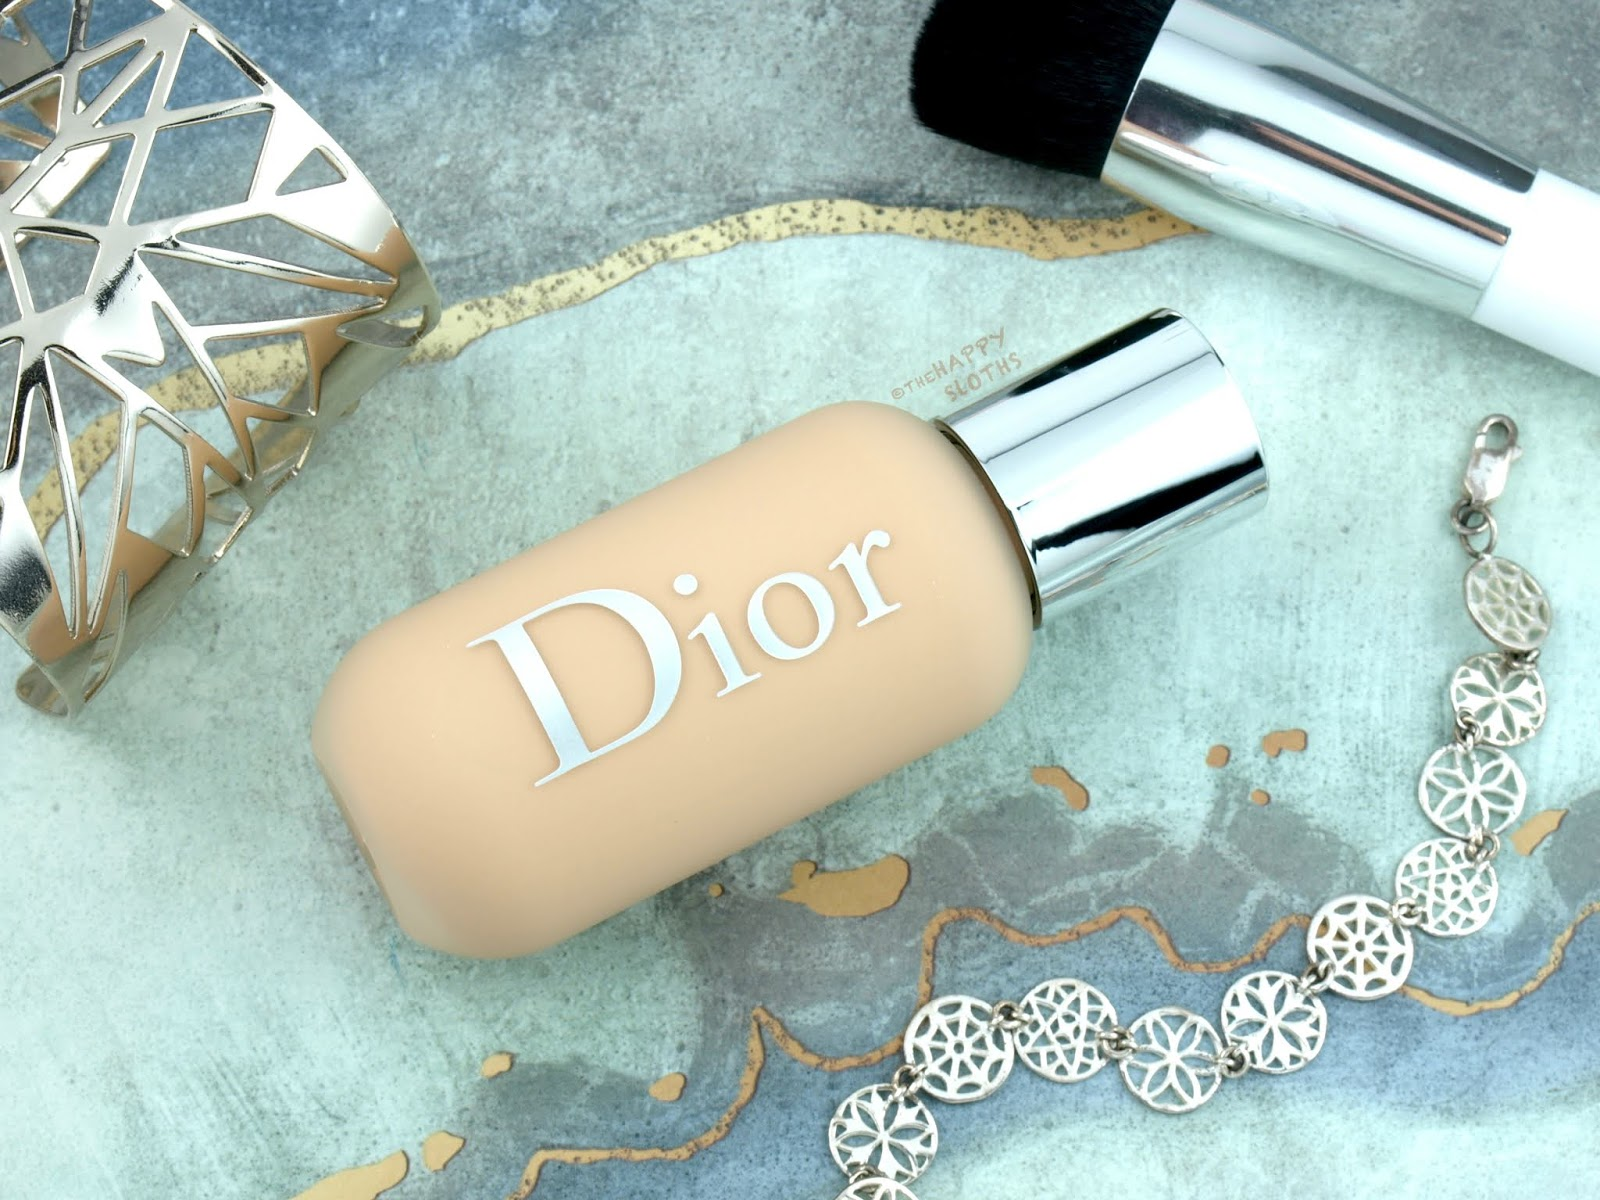 Dior | Backstage Face & Body Foundation: Review and Swatches